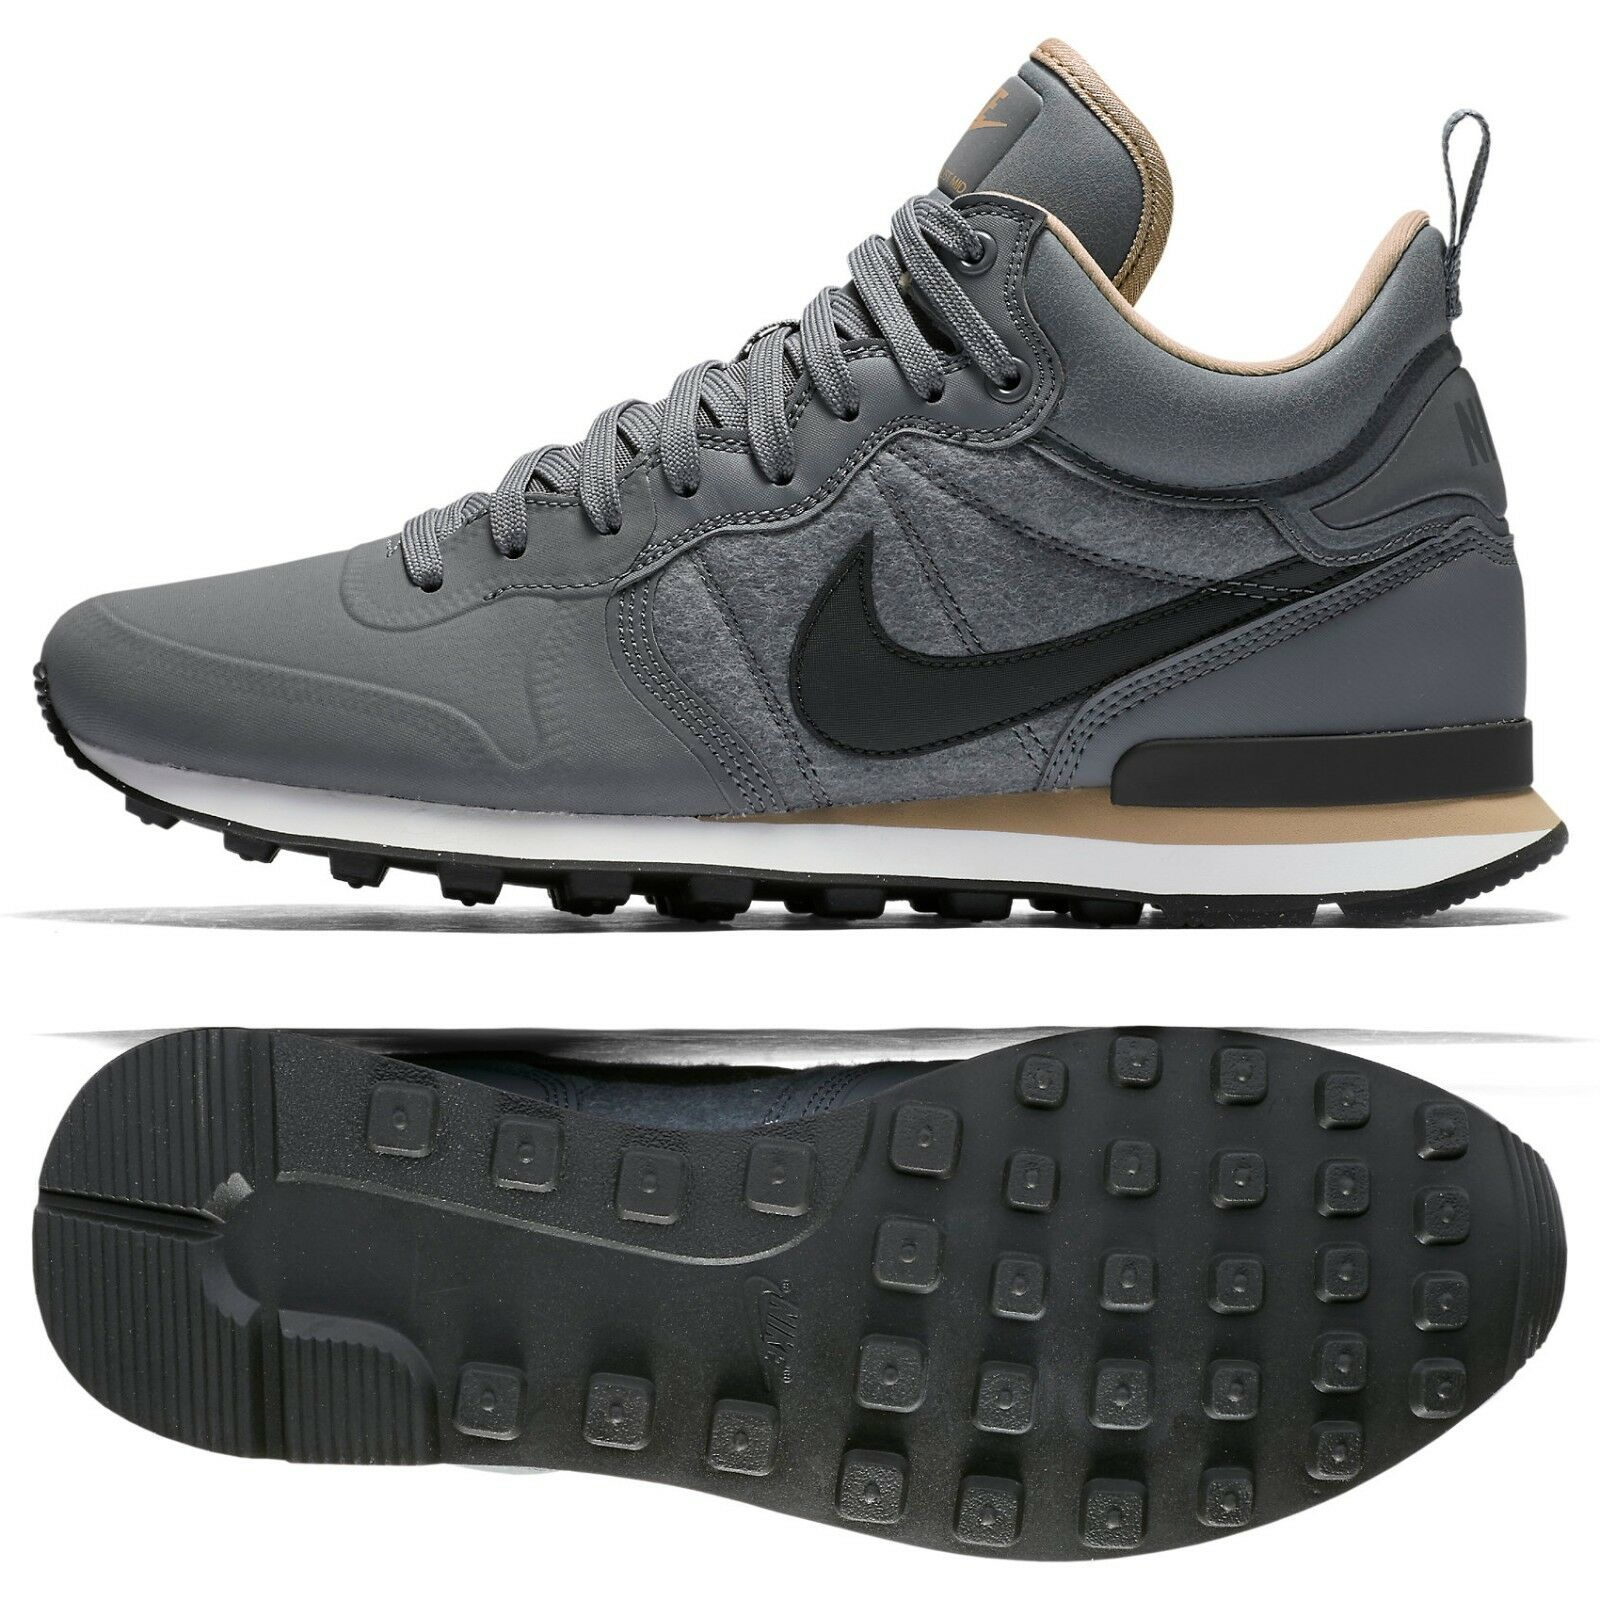 Nike Internationalist Utility Wool Upper Pack 857937-003 Grey/Pewter Men's Shoes Comfortable and good-looking